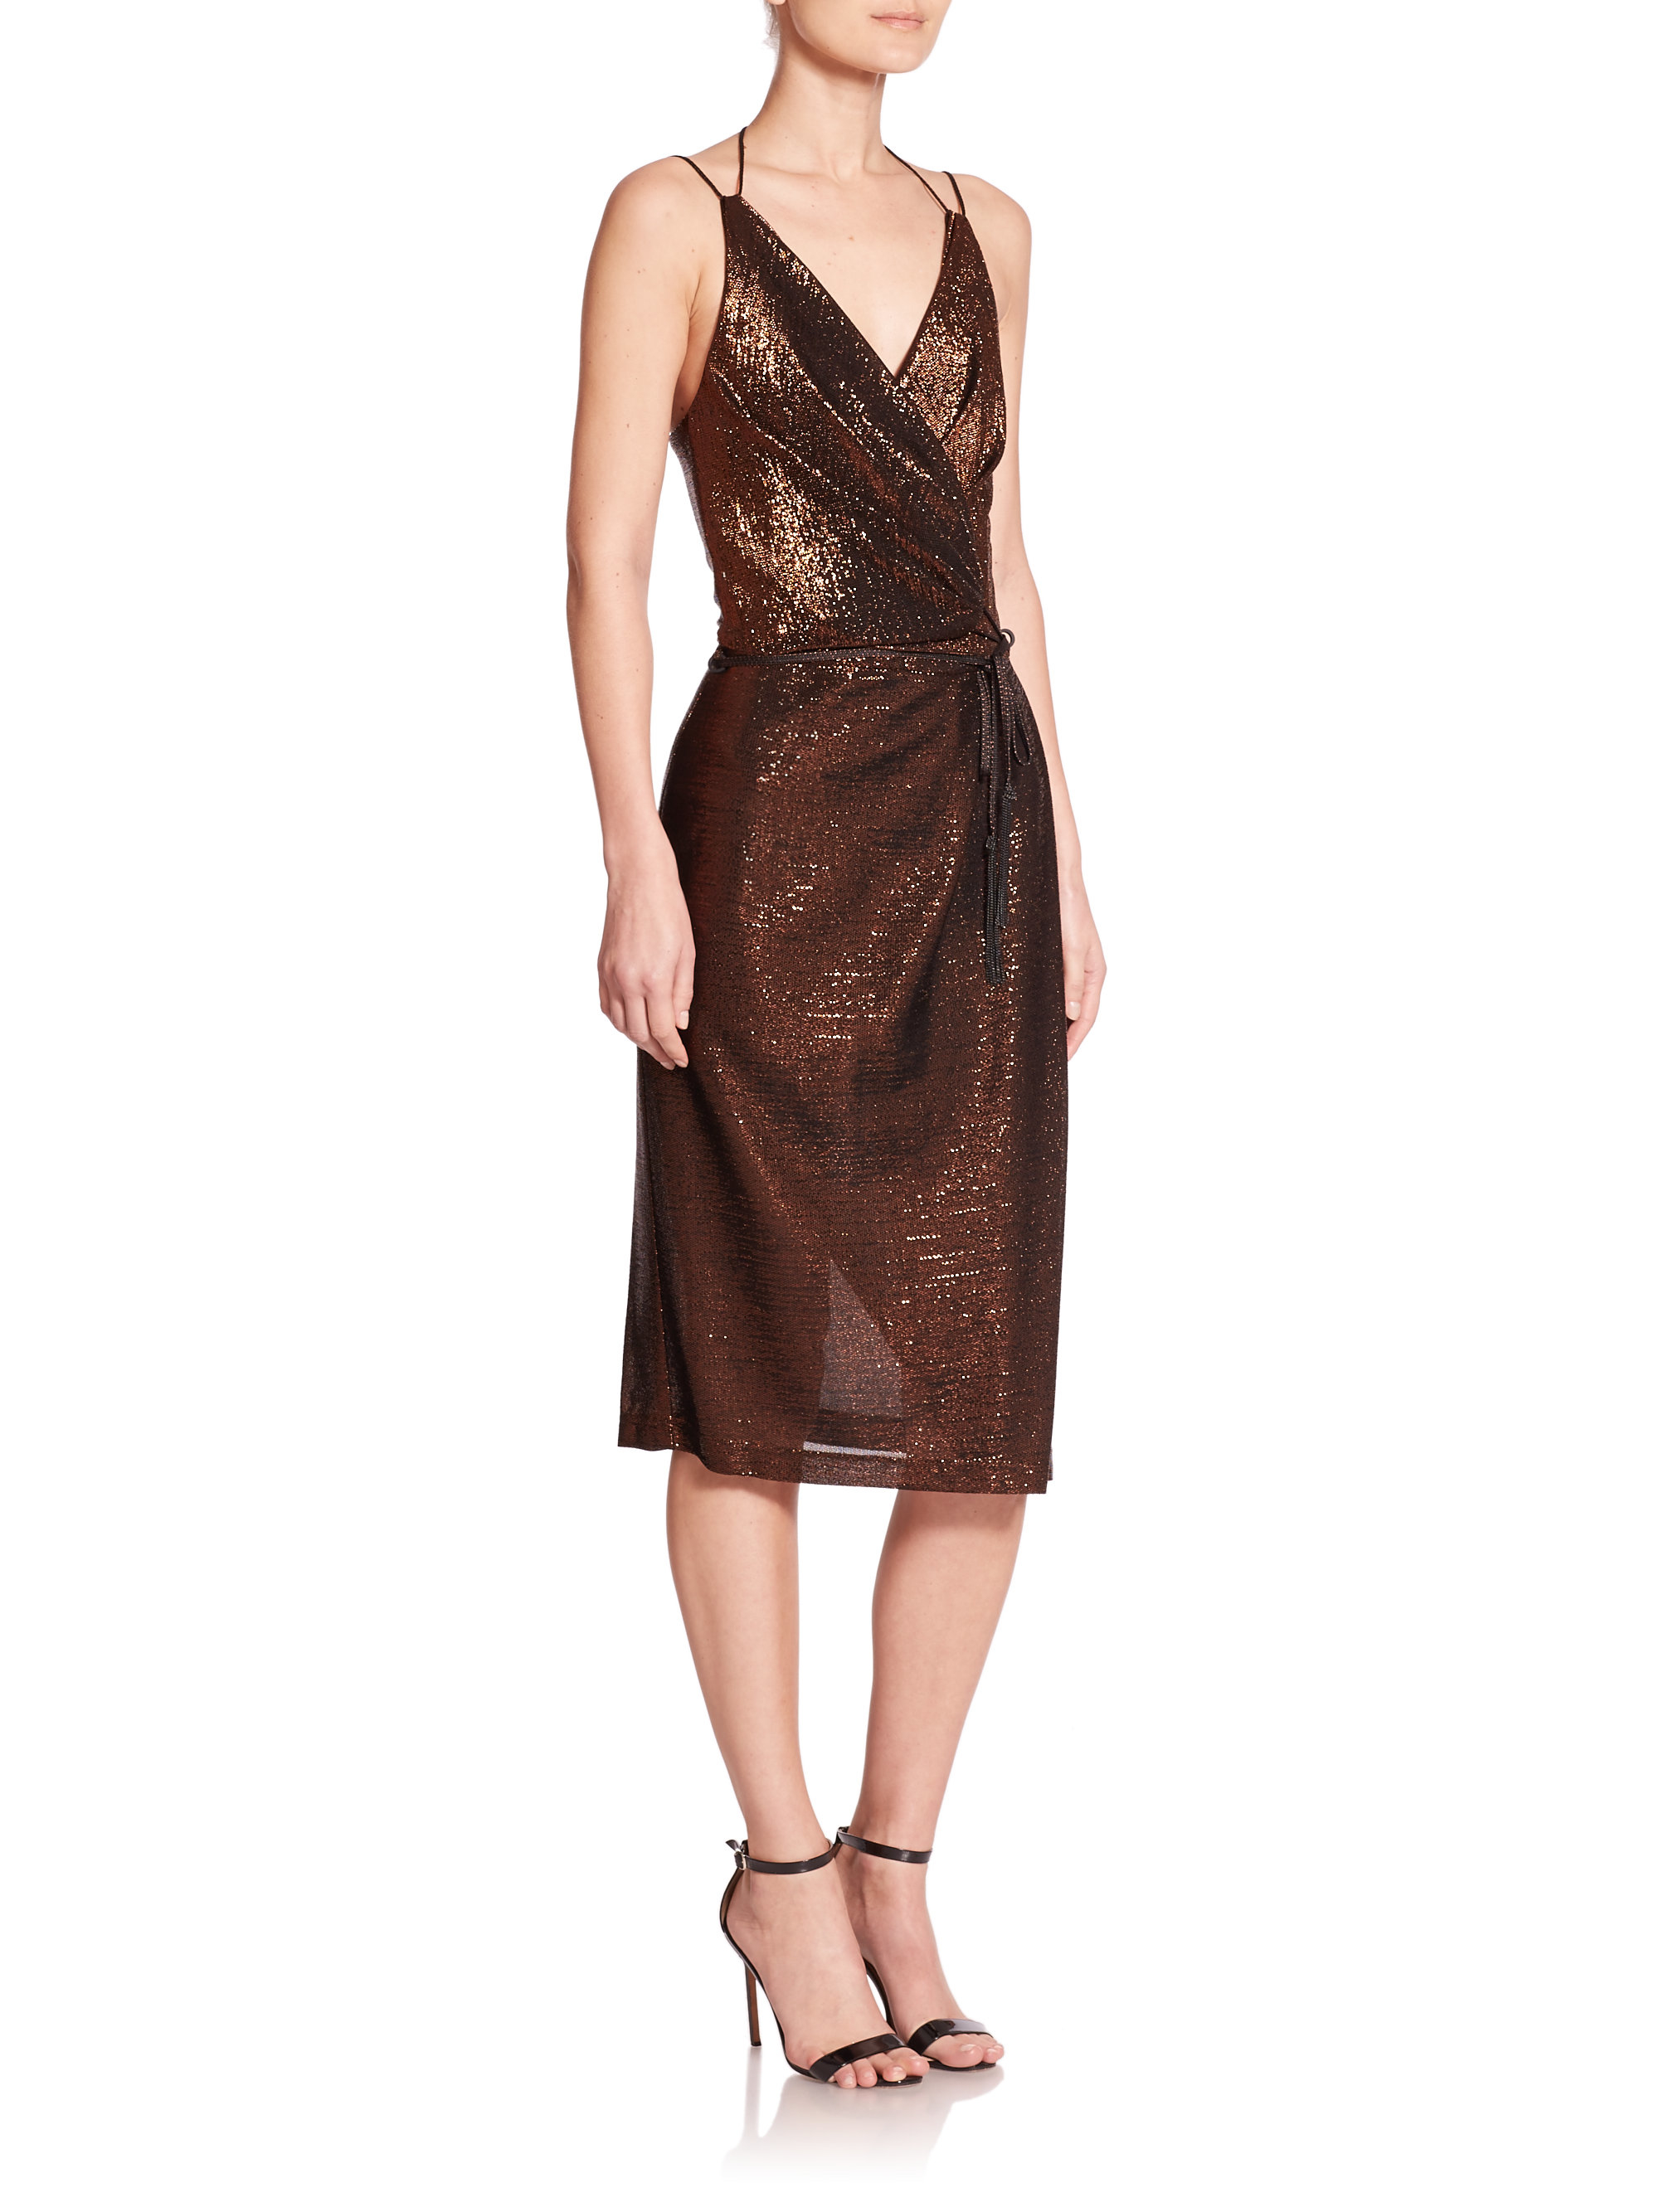 Kempner Olivia Metallic Wrap Dress In Metallic Lyst